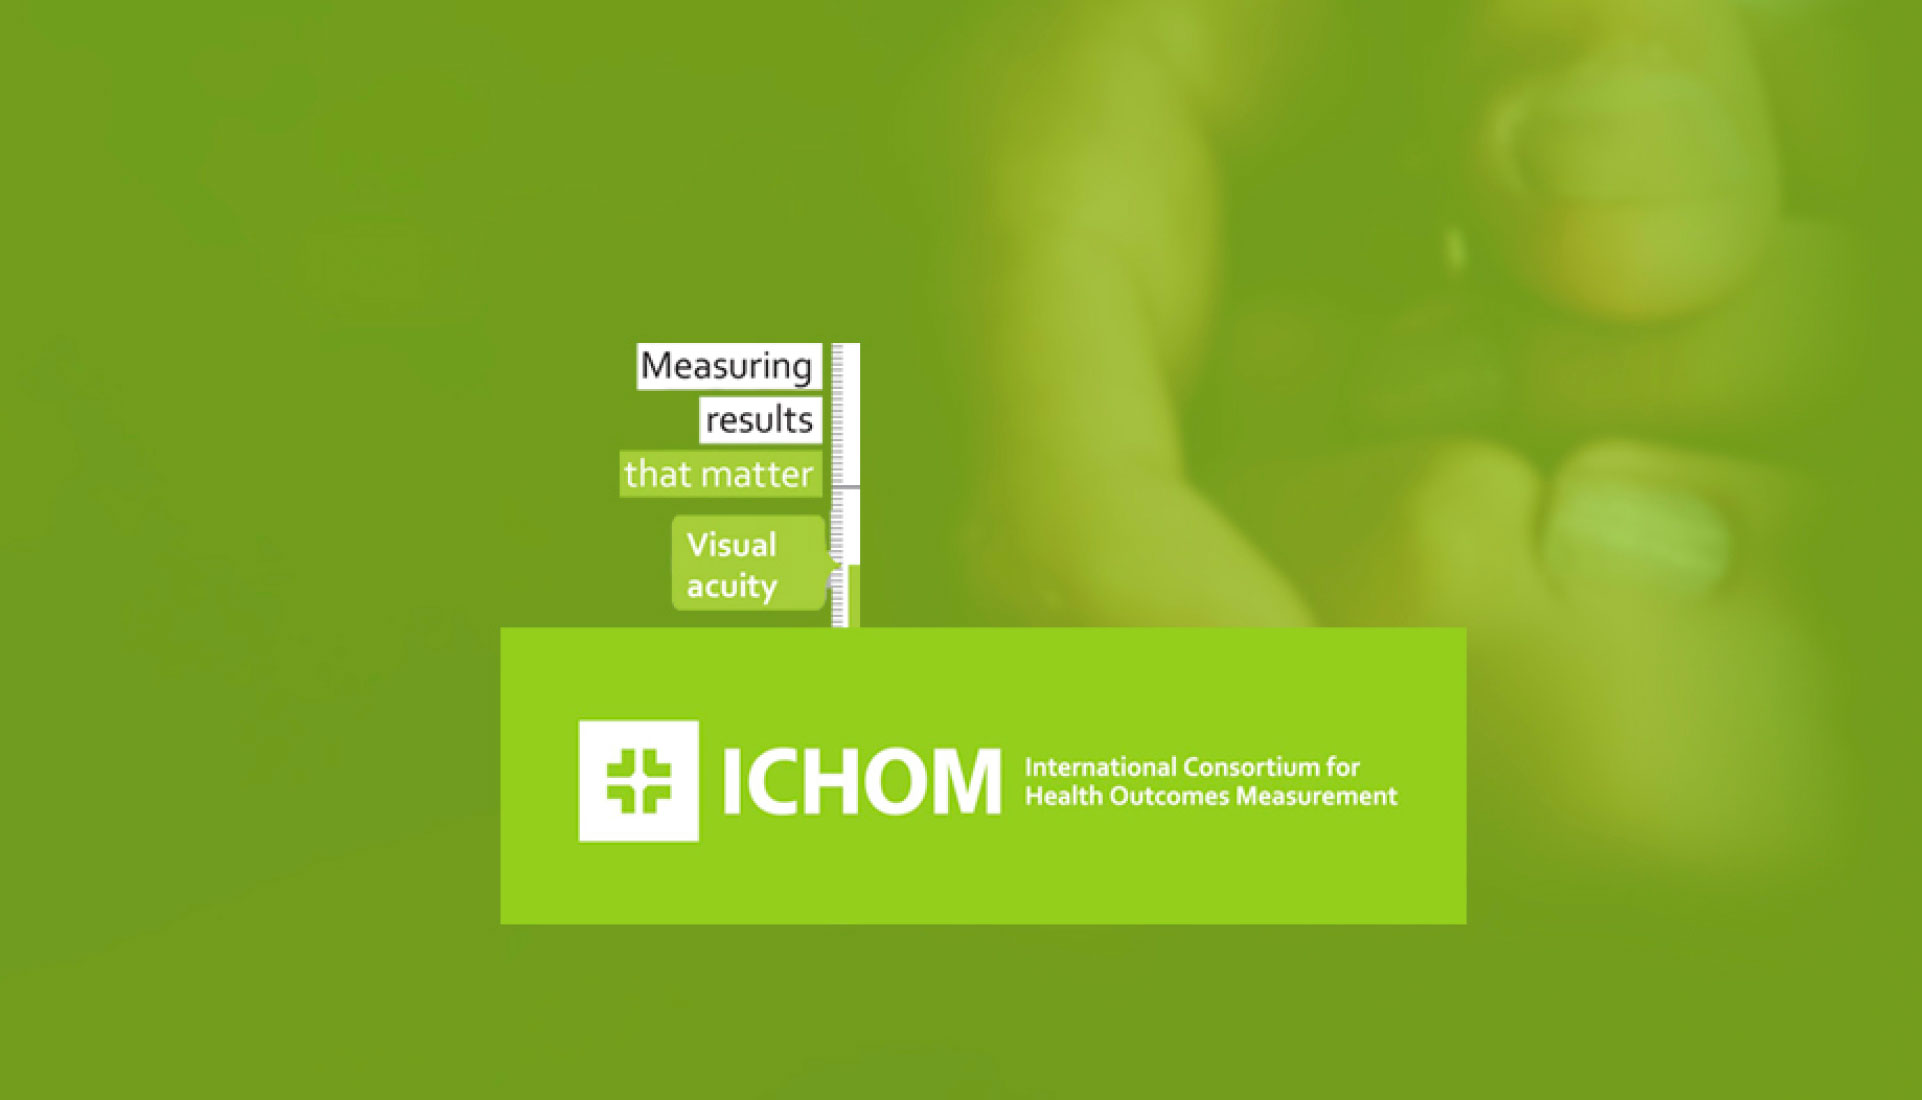 Clinica Qvision Valor Salud img ichom